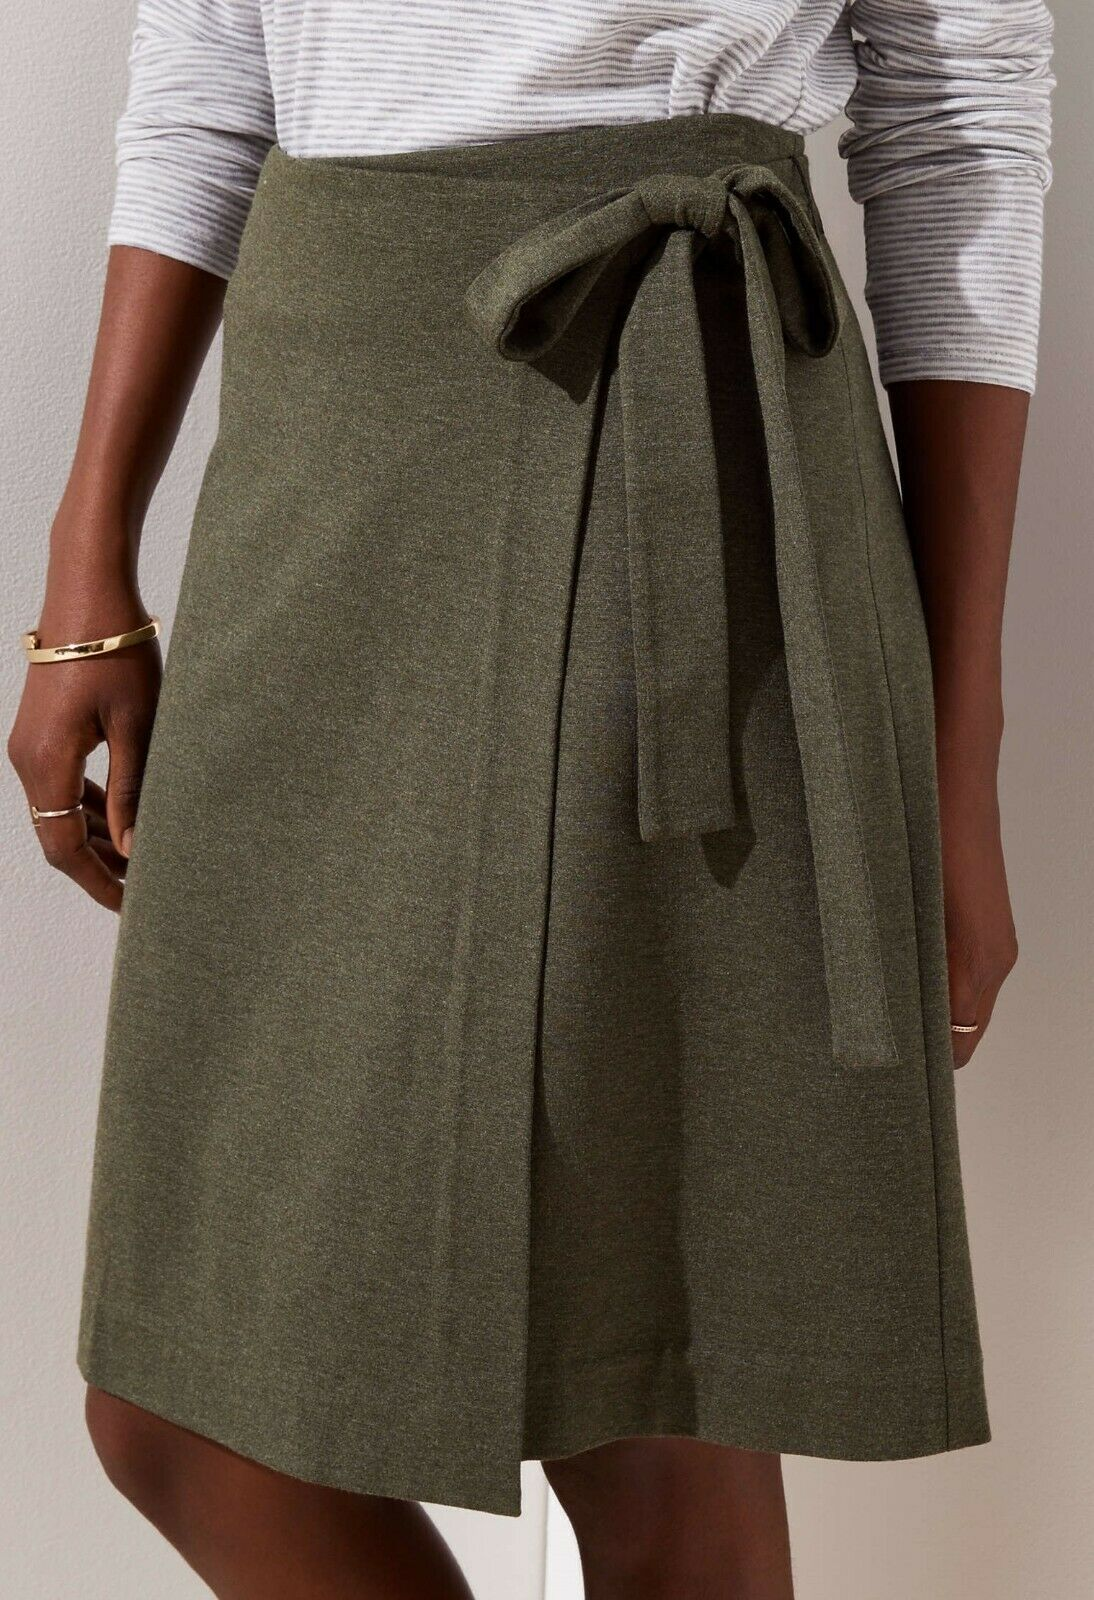 Ann Taylor LOFT Wrap Skirt Size Small Petite NWT Bold Olive color